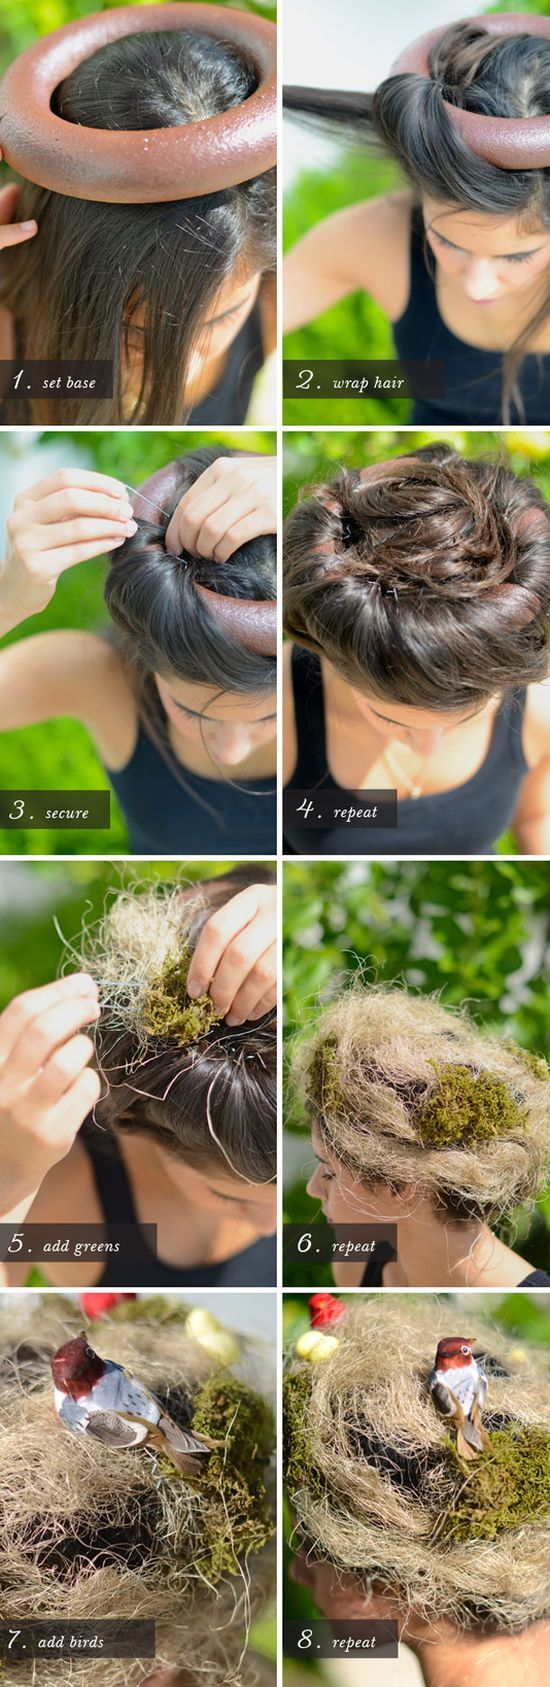 How to make birds nest hair for Halloween, Perhaps good for going as Mother Earth